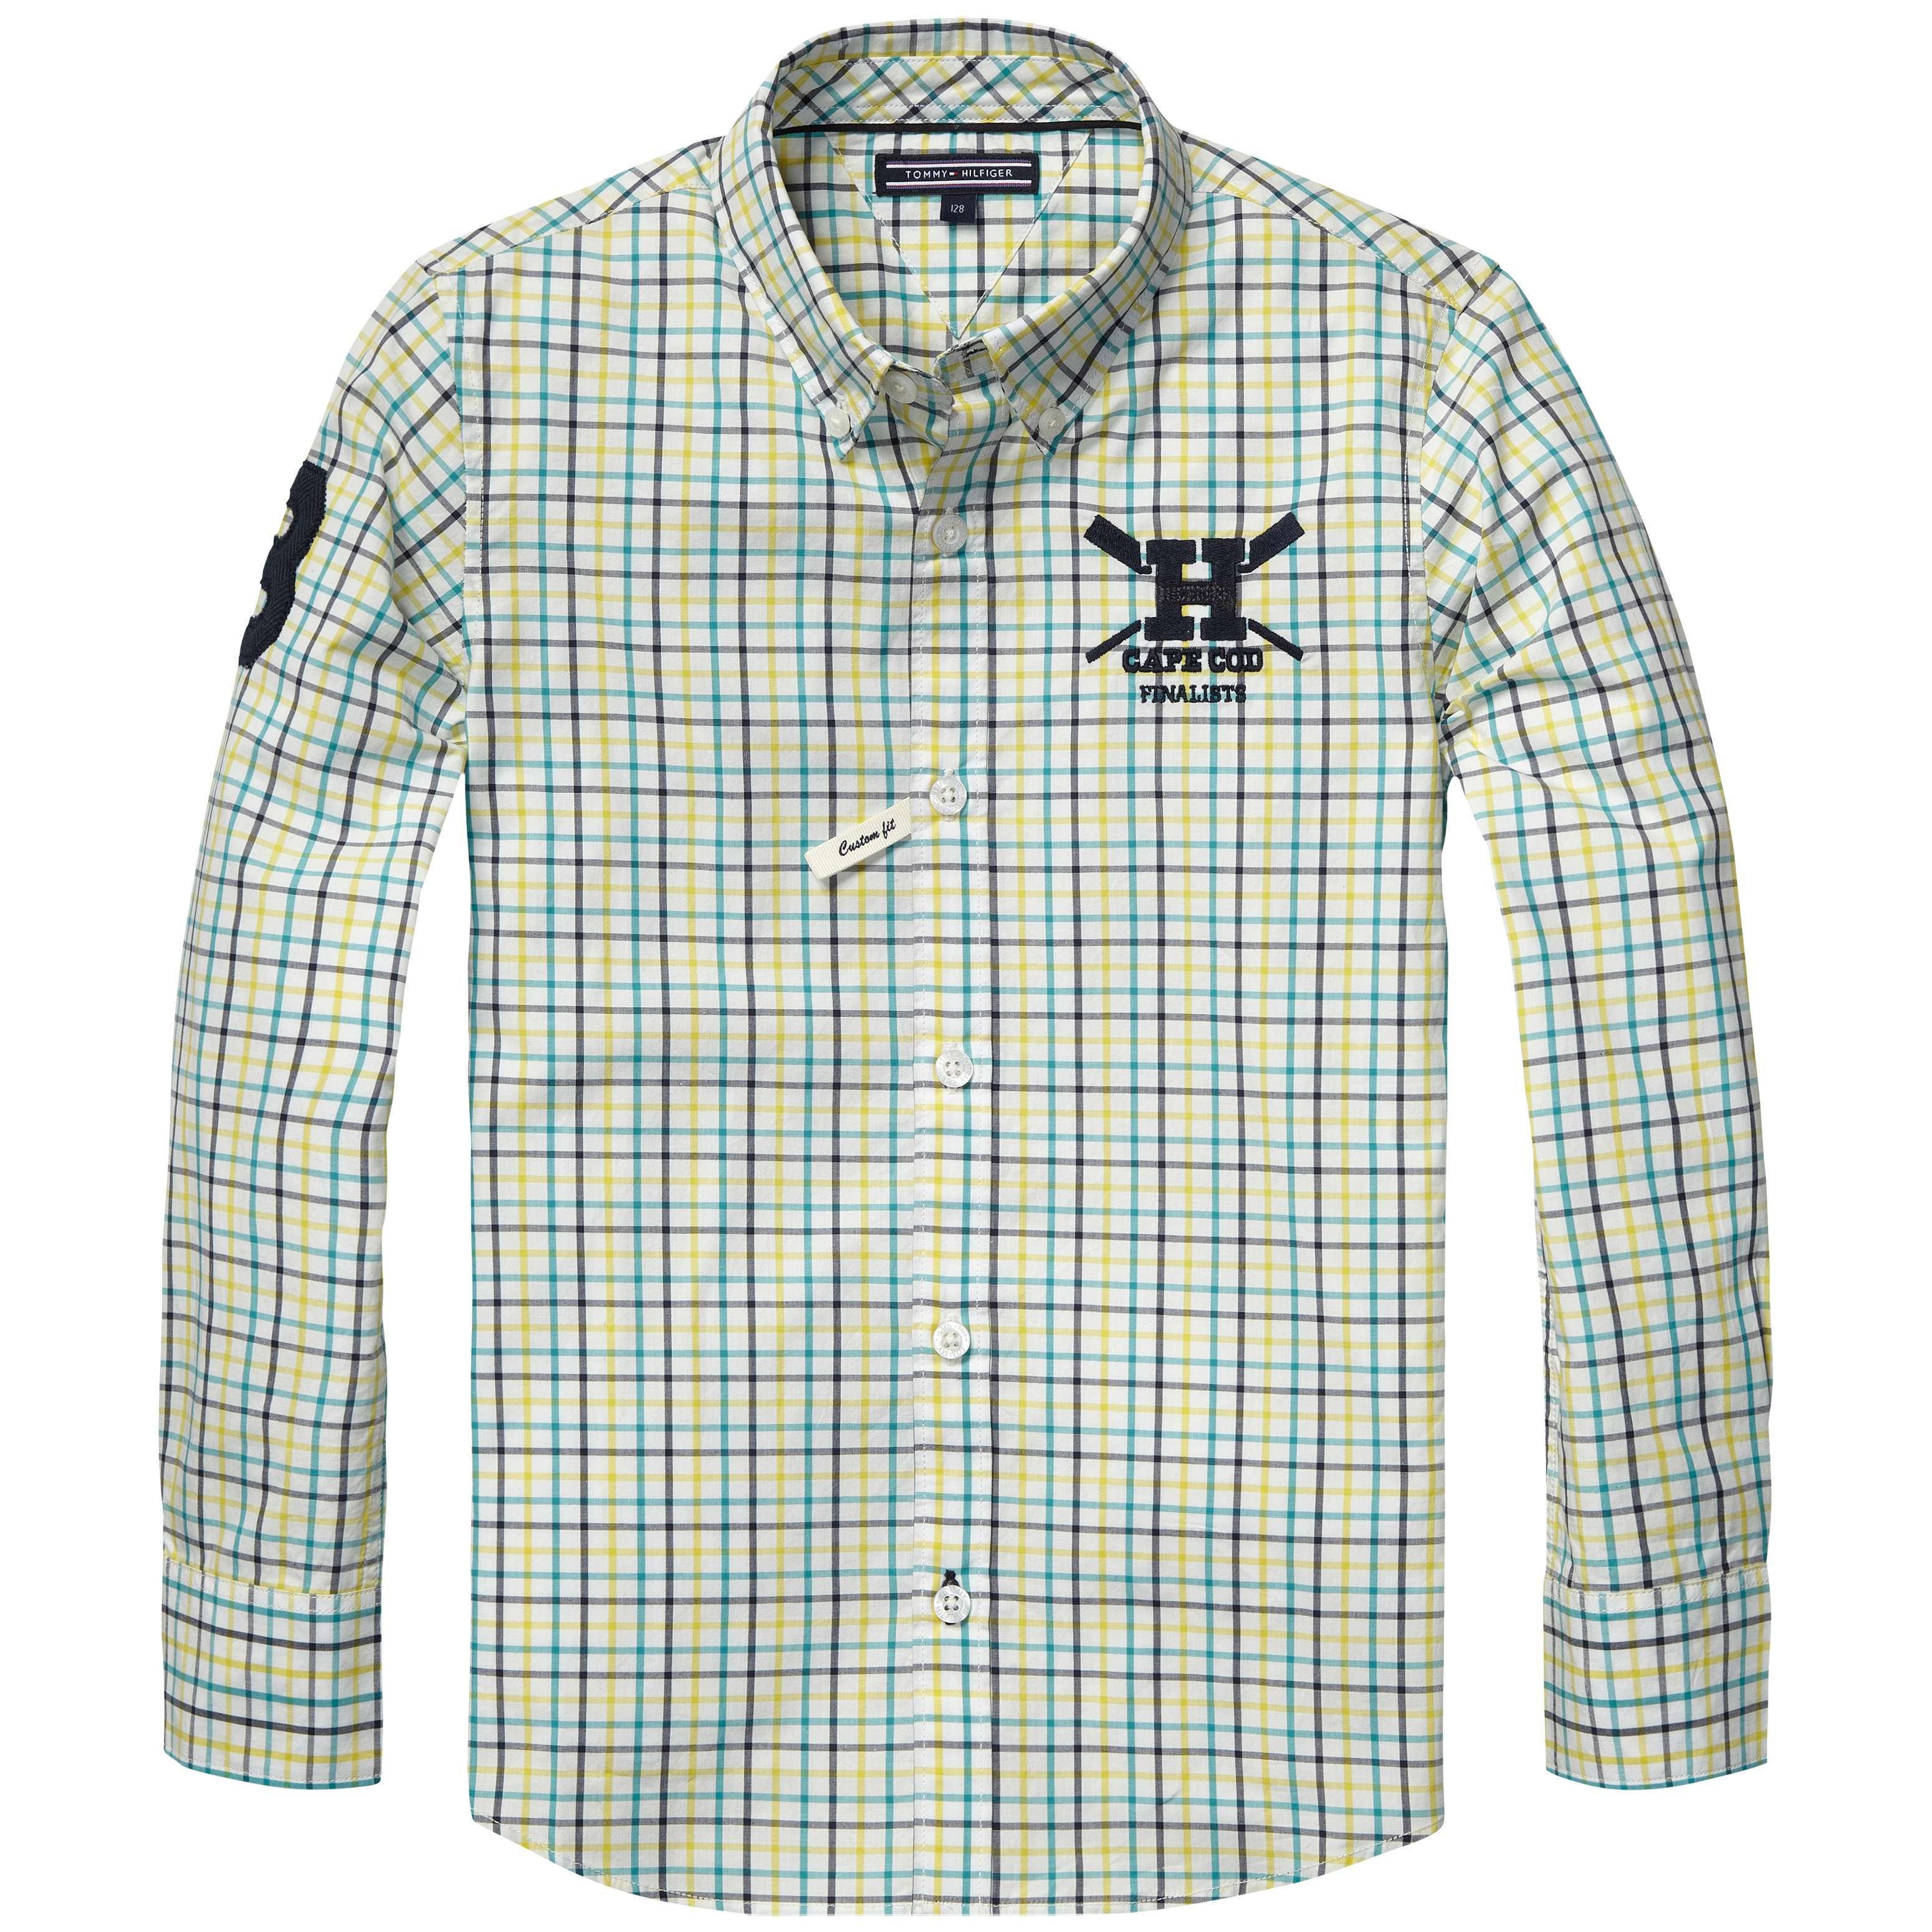 Boys iggy check shirt